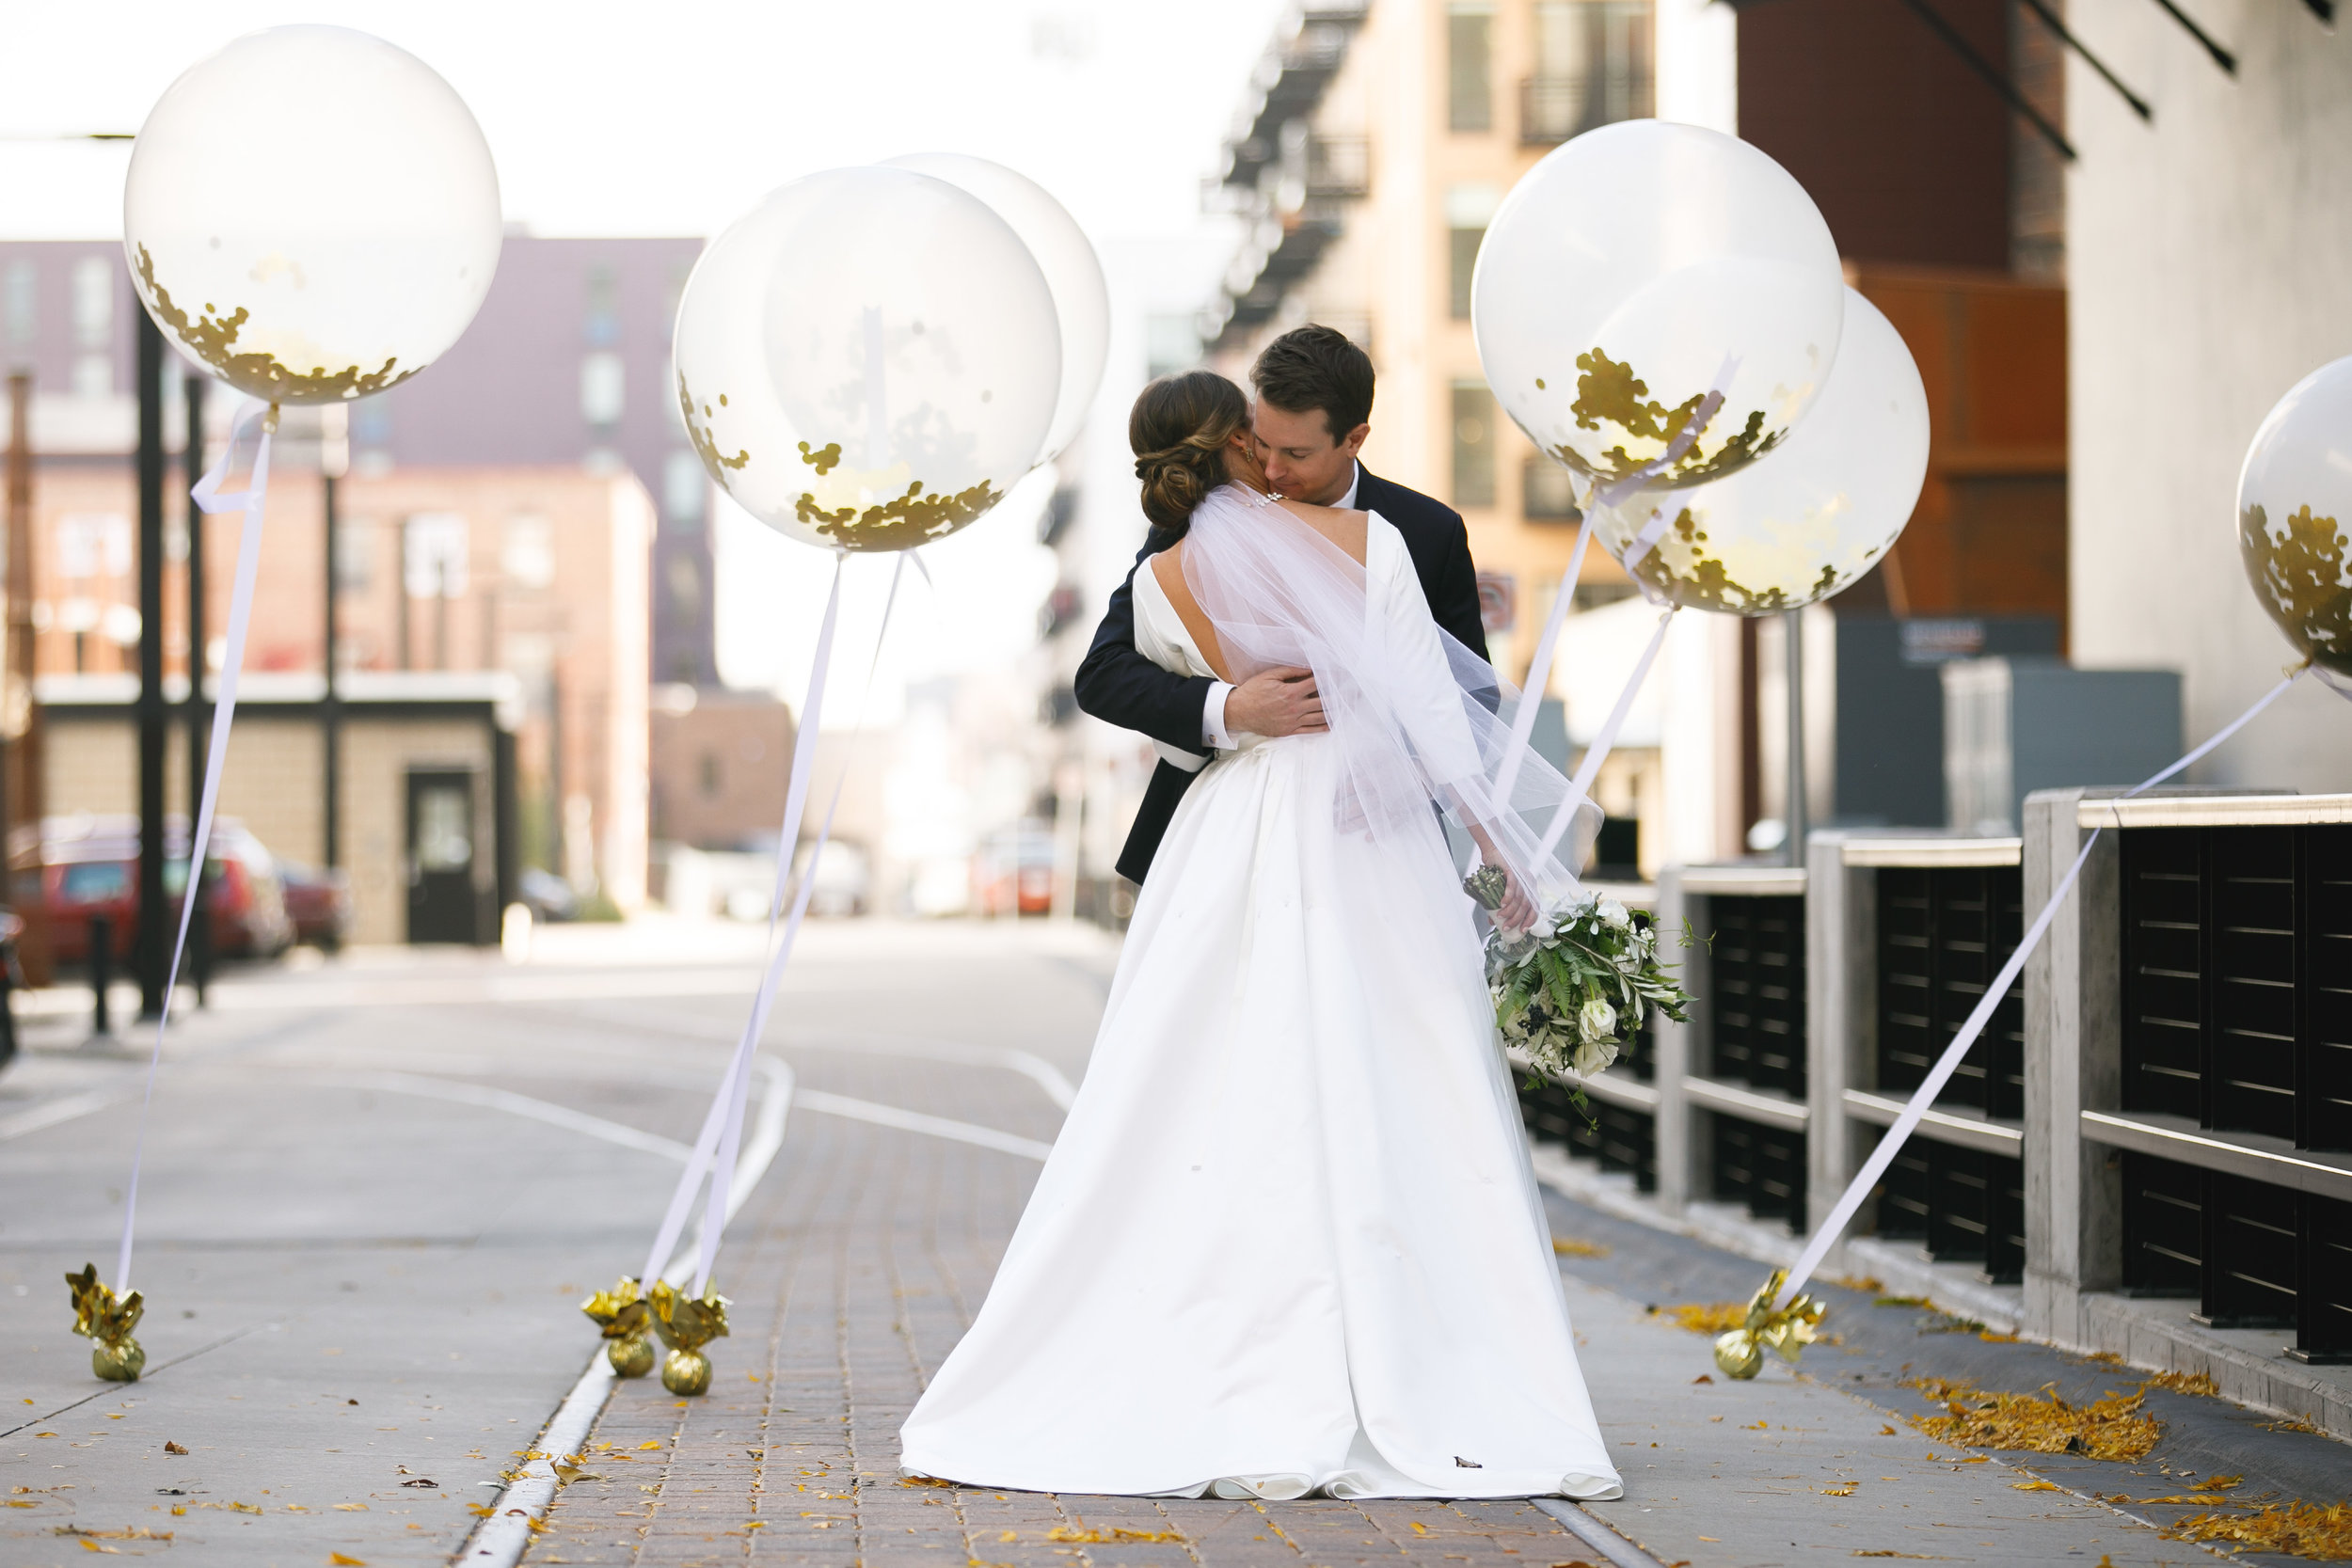 Brovado Wedding Photography | Machine Shop Minneapolis | Sixpence Events Day of Coordinating first look in the alley with balloons bride and groom.jpg